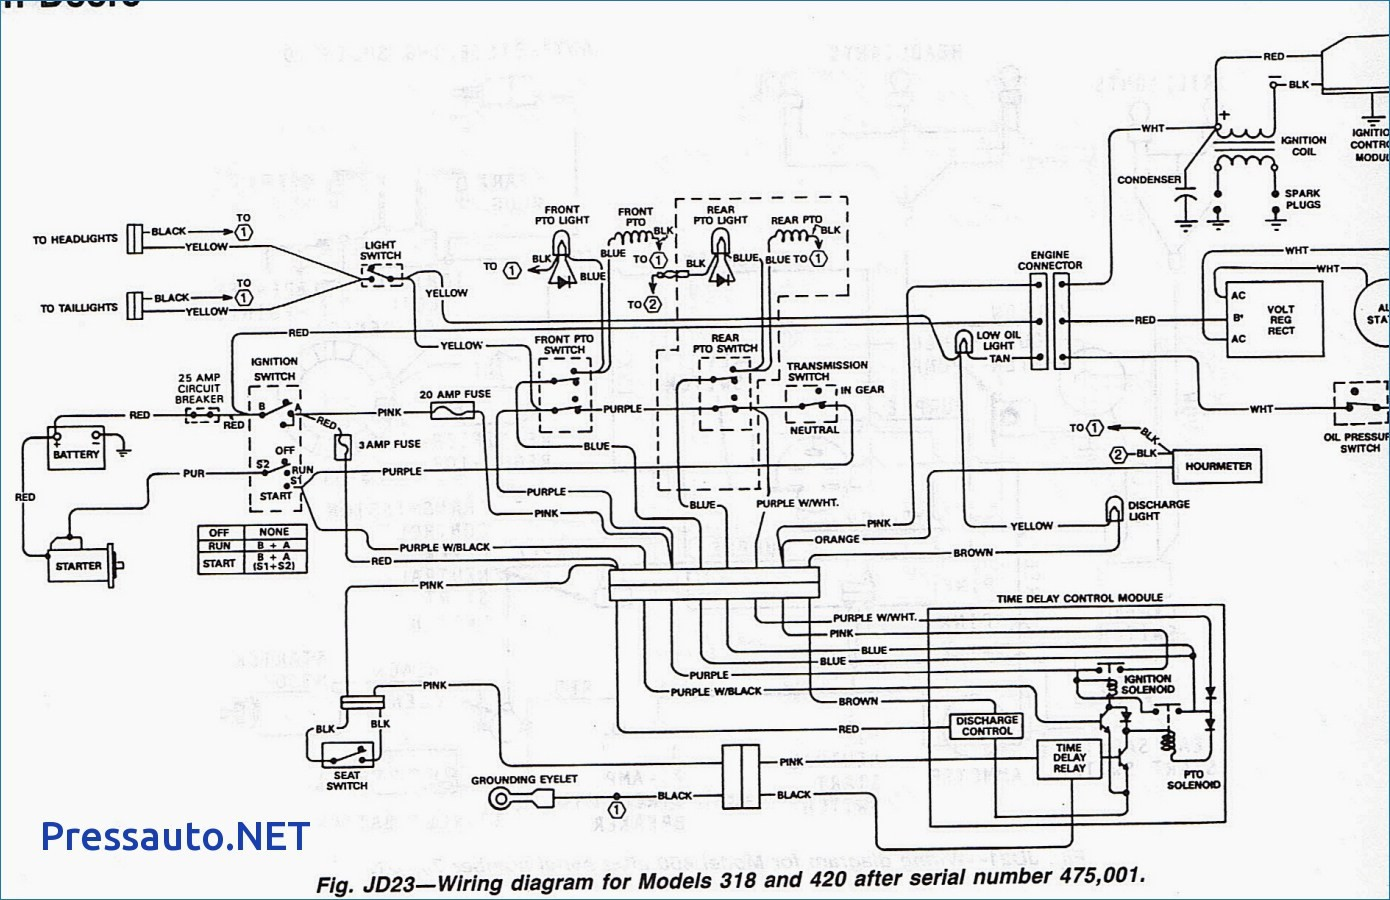 hight resolution of john deere l120 pto switch wiring diagram wiring diagram expert john deere l120 mower wiring diagram